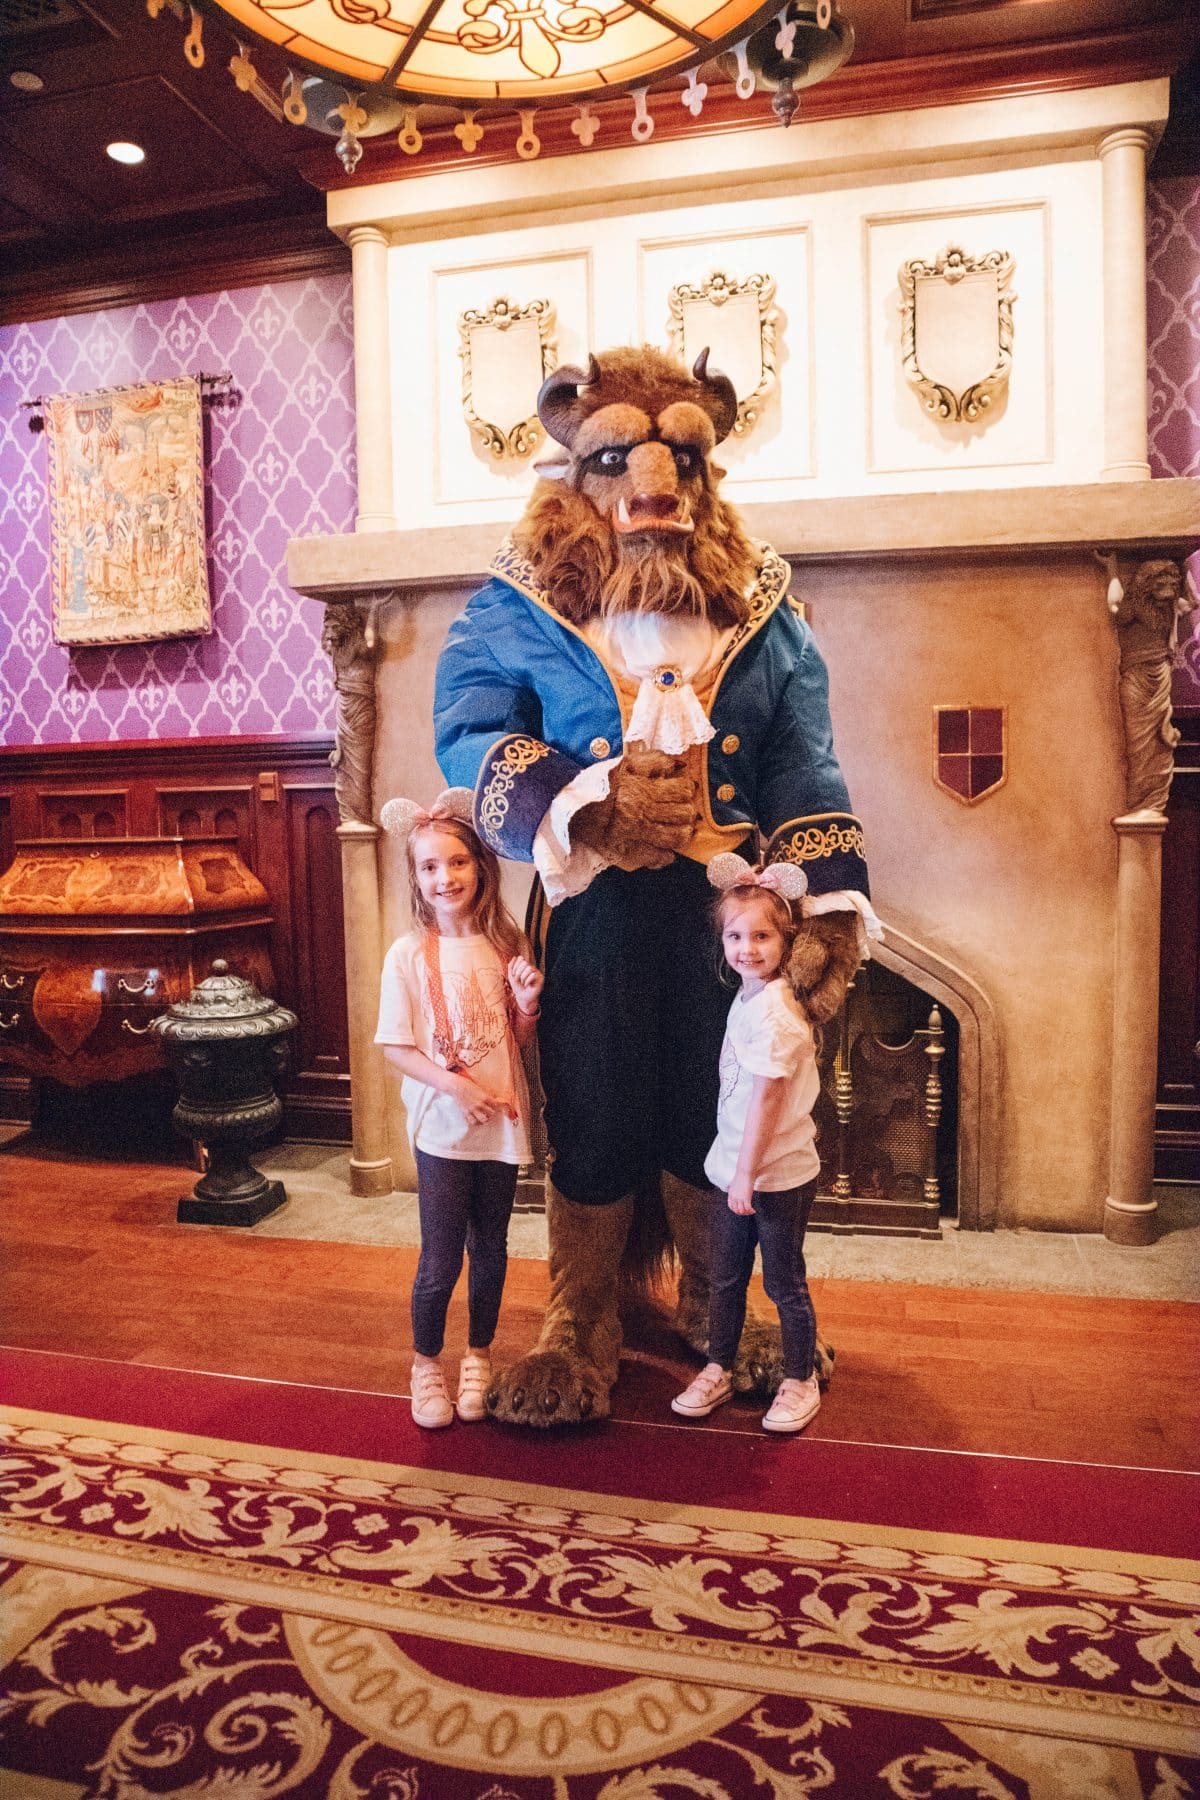 Houston lifestyle blogger Meg O. shares her family babymoon travel guide and recap to Walt Disney World - meeting the Beast at Be Our Guest in Magic Kingdom